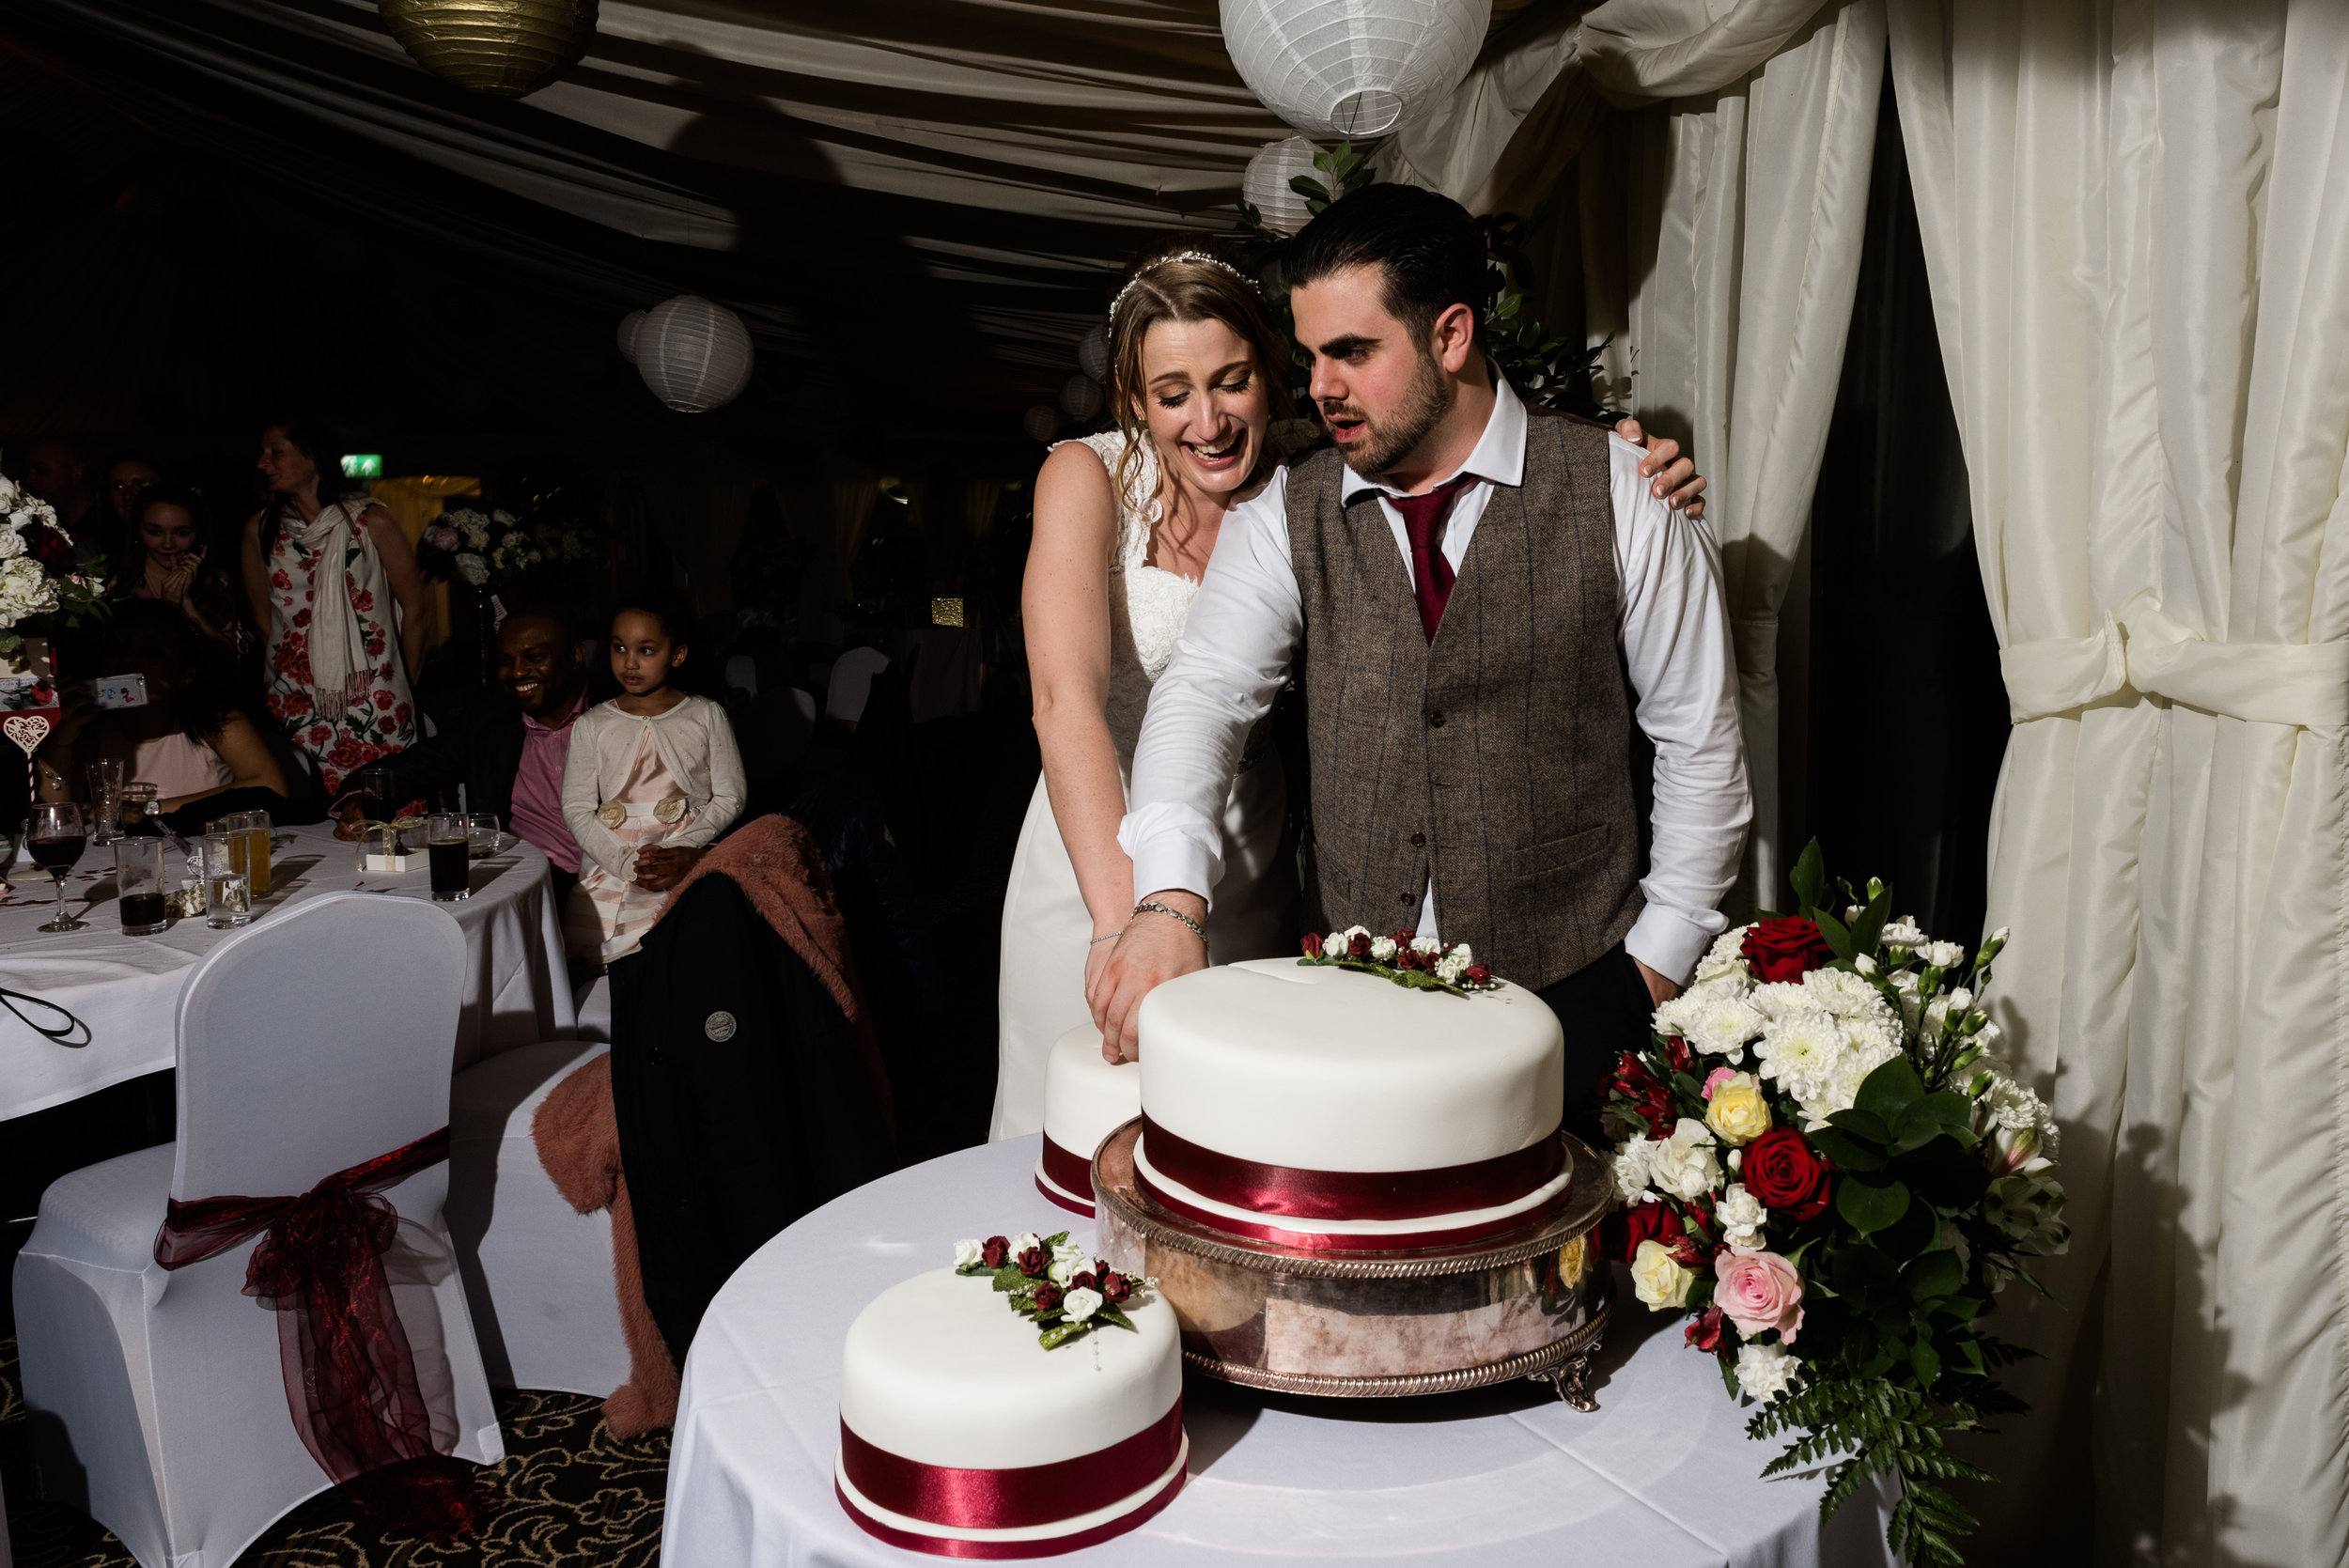 Birmingham Documentary Wedding Photography at New Hall, Sutton Coldfield Turkish Red Candid Reportage - Jenny Harper-76.jpg